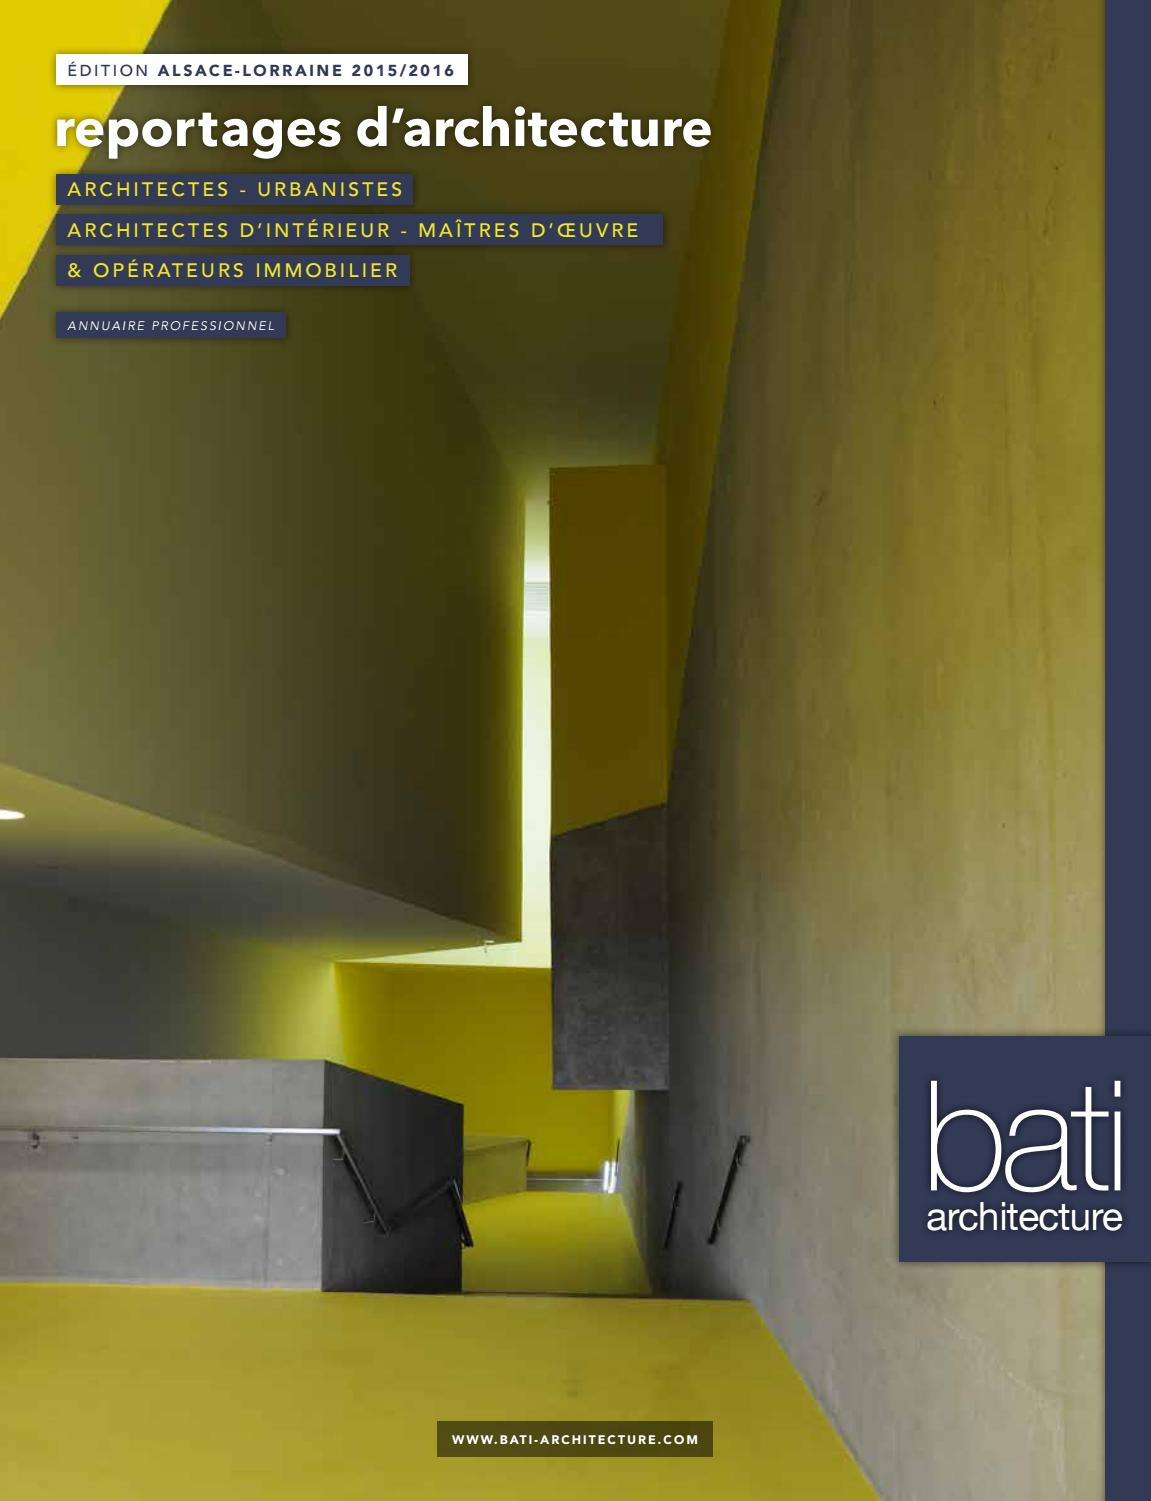 revue alsace lorraine 2015 2016 by bati architecture issuu. Black Bedroom Furniture Sets. Home Design Ideas